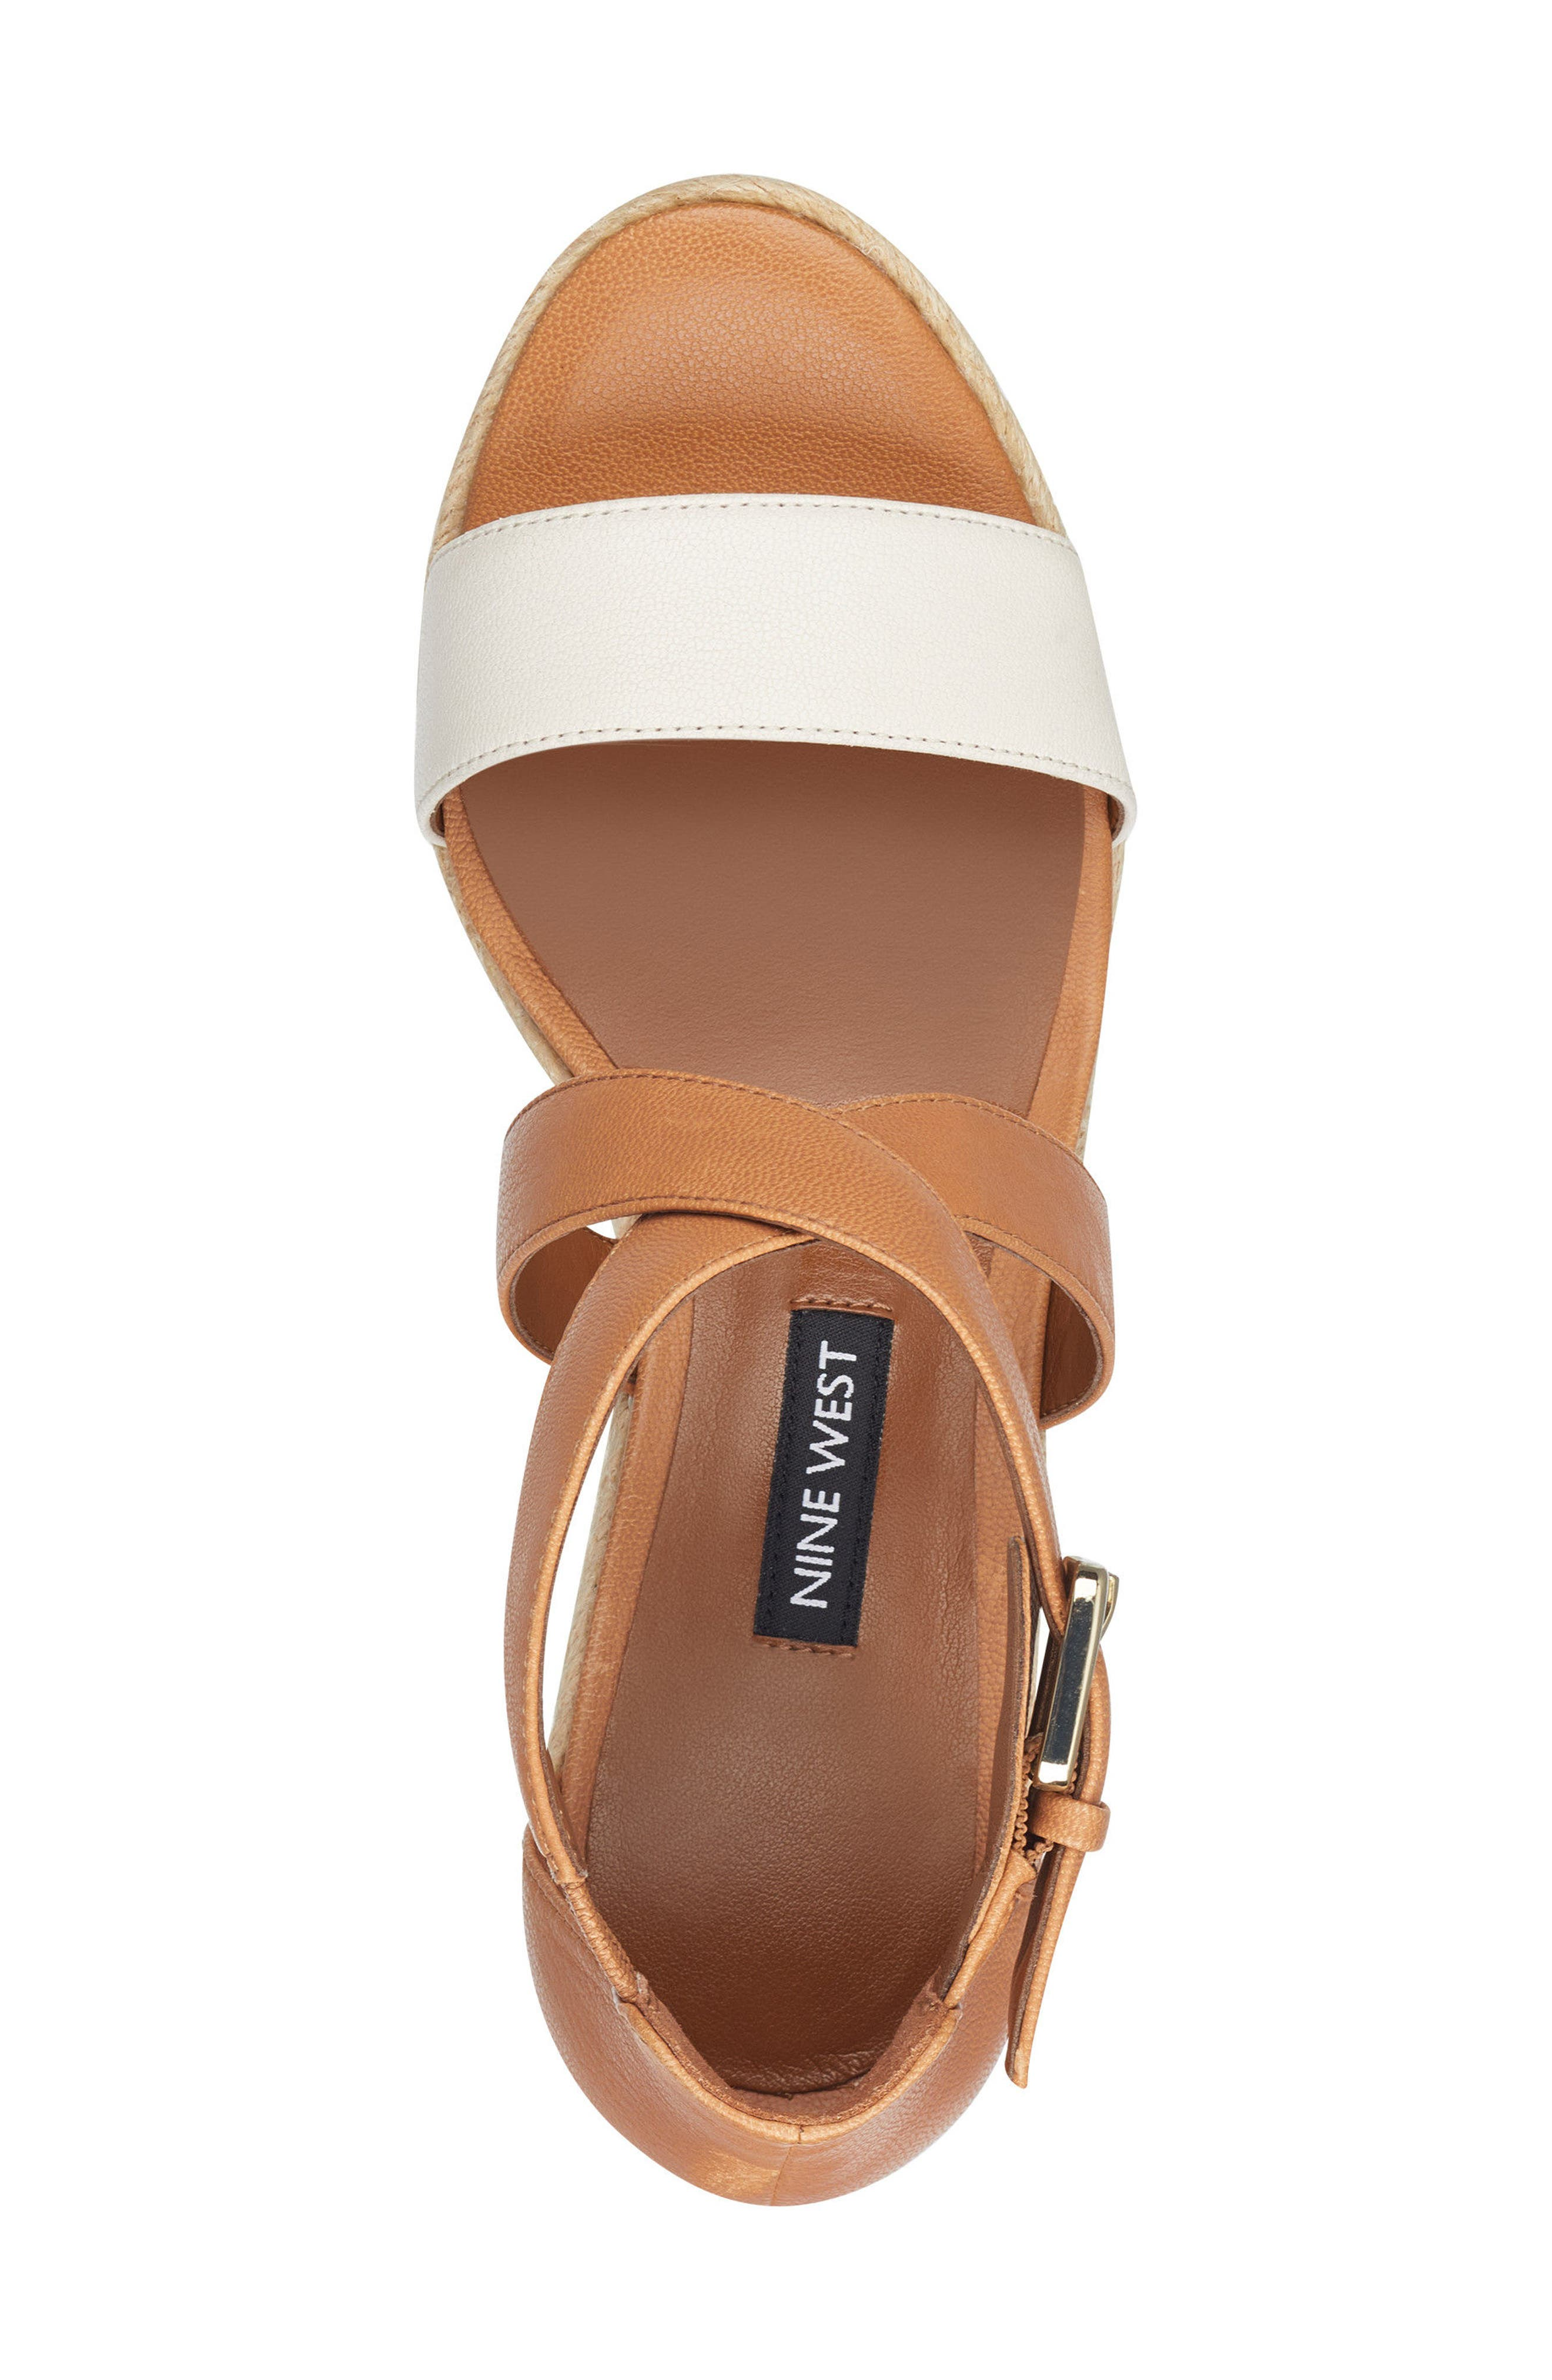 Jorjapeach Espadrille Wedge Sandal,                             Alternate thumbnail 5, color,                             White Leather